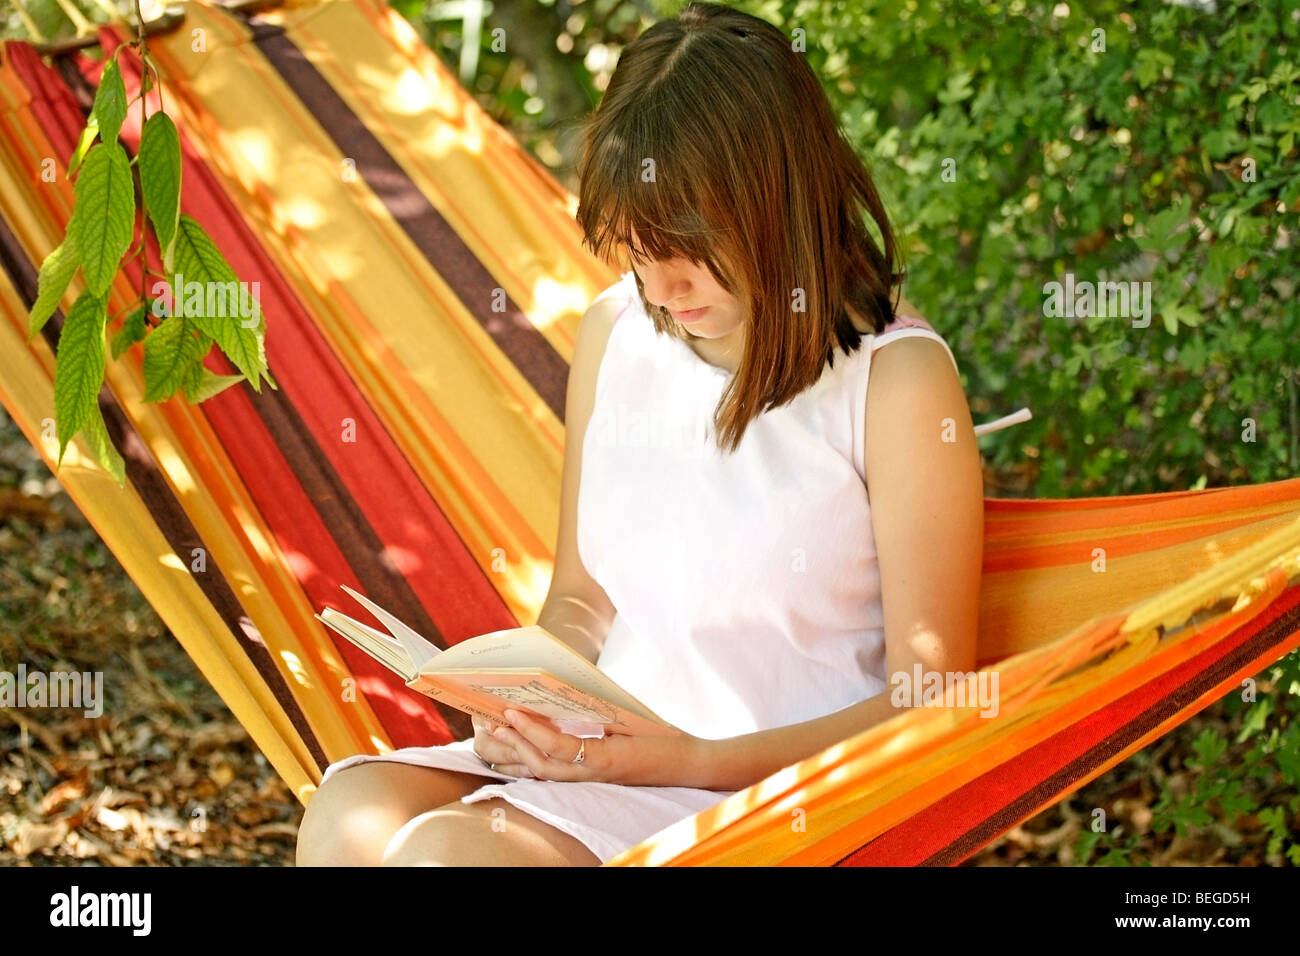 Reading in a hammock - Stock Image